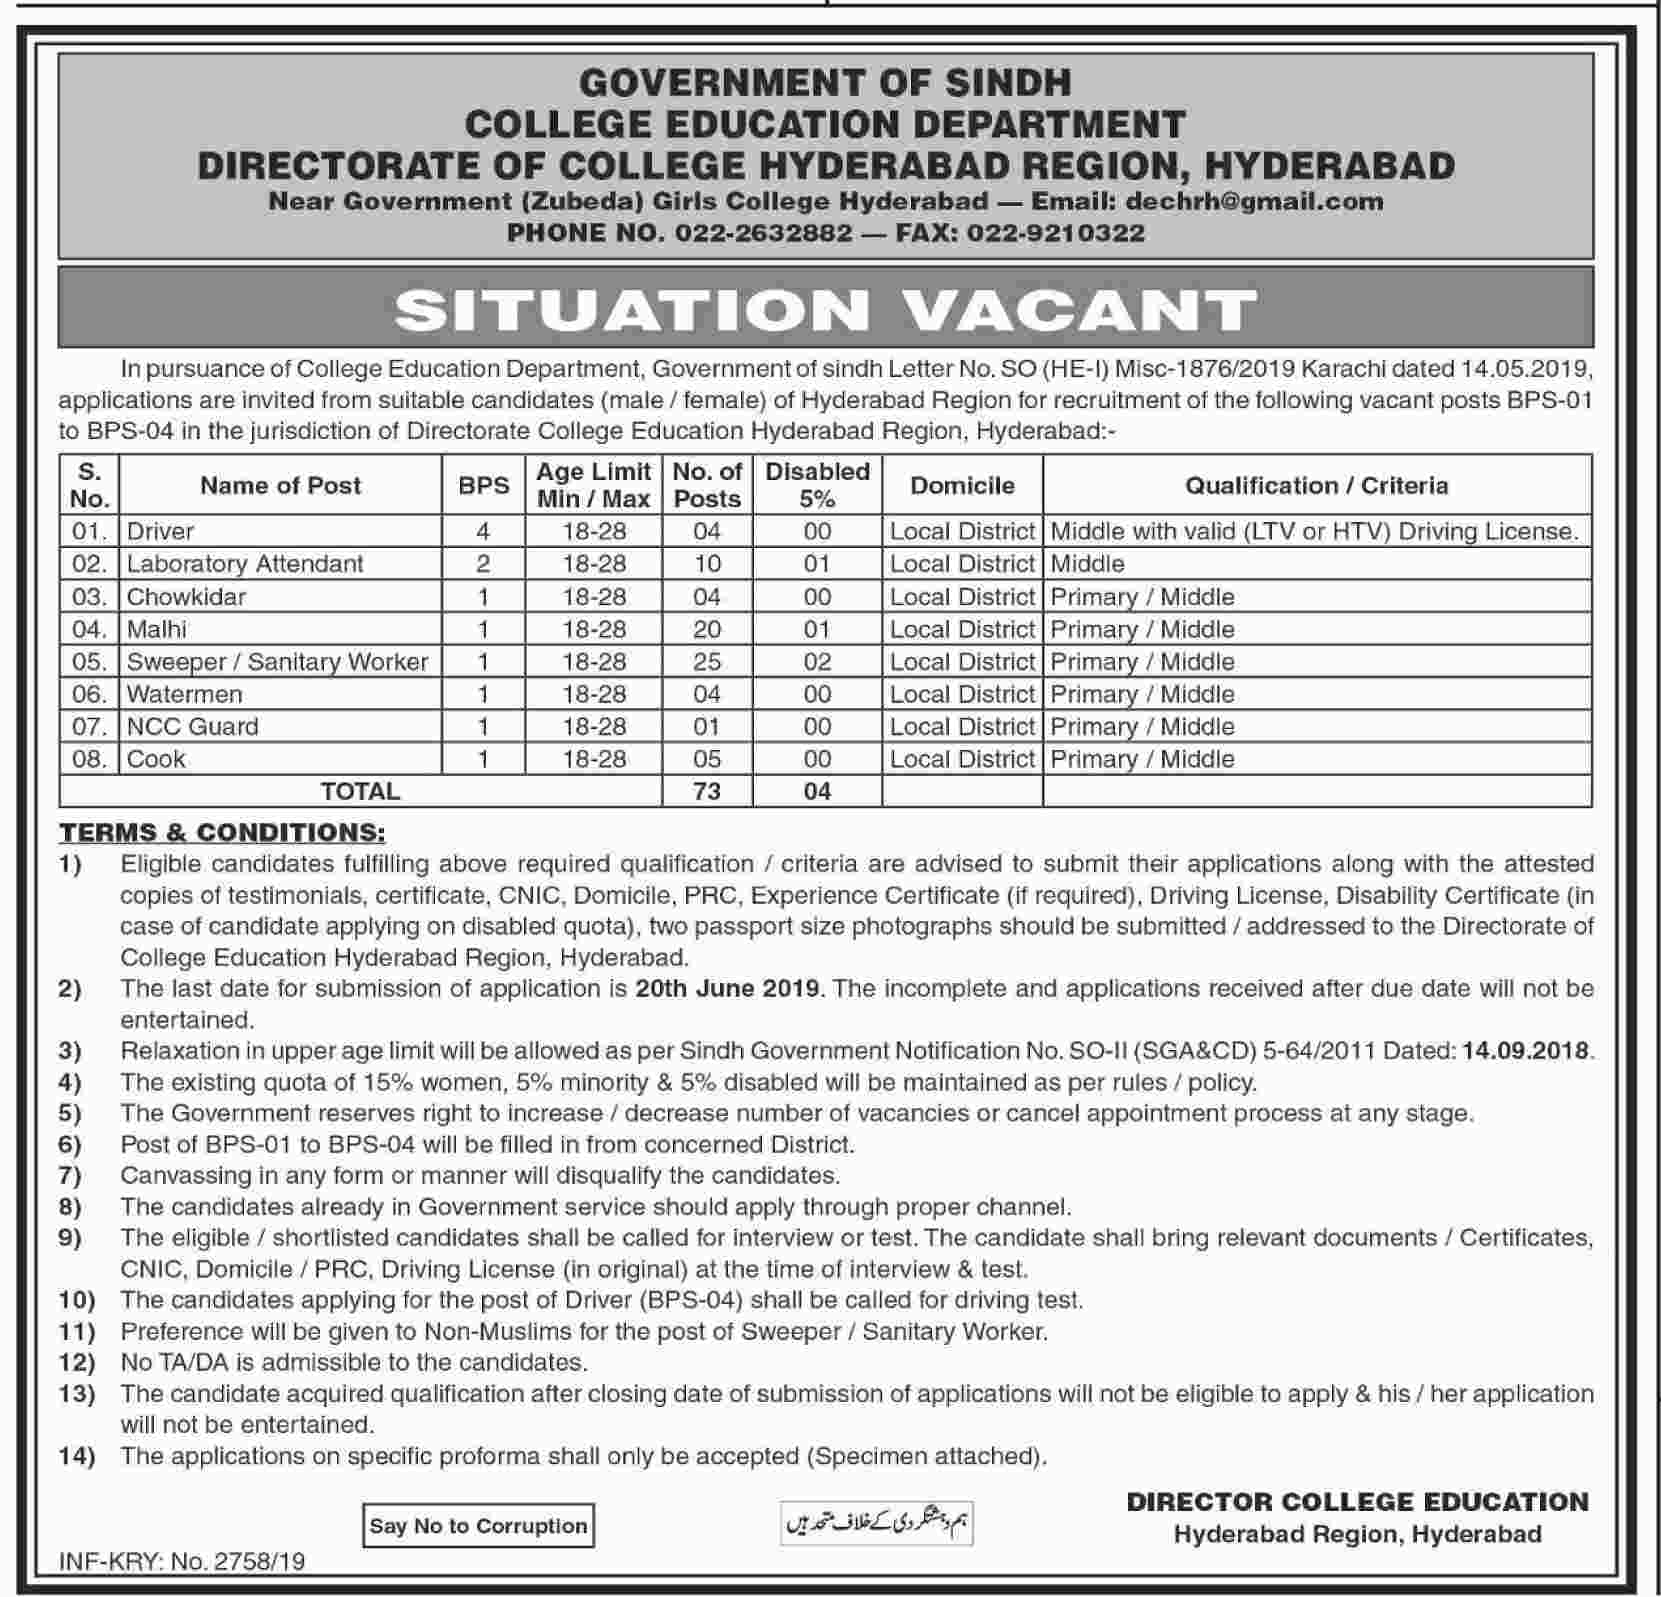 Job Application Form Government Of Sindh on medical application form, government articles, government job application cover letter, government training, health care application form, driver application form, doctor application form, government employment, government job vacancies, bank application form, government newsletter, government order form, business application form, government benefits, government events, security application form, government job application process, finance application form, teaching application form, government job openings,